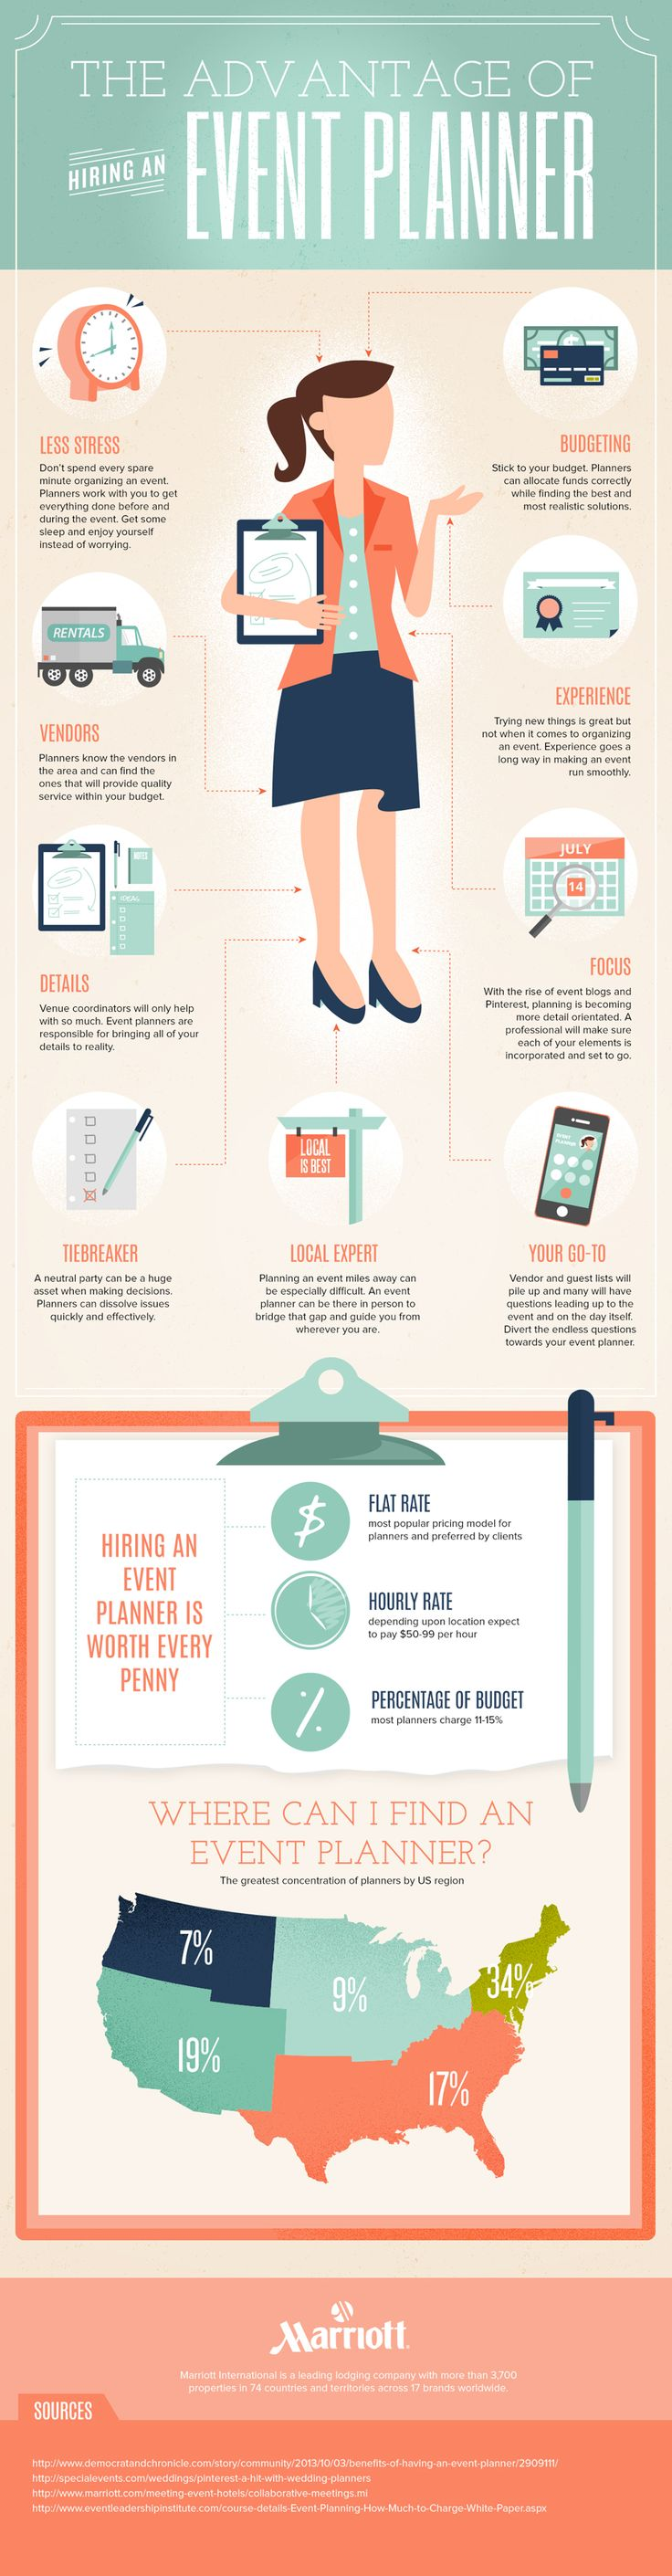 How to build an event budget infographic from planning pod how to build an event budget infographic from planning pod useful for any student organization weddings pinterest infographic budgeting and malvernweather Images